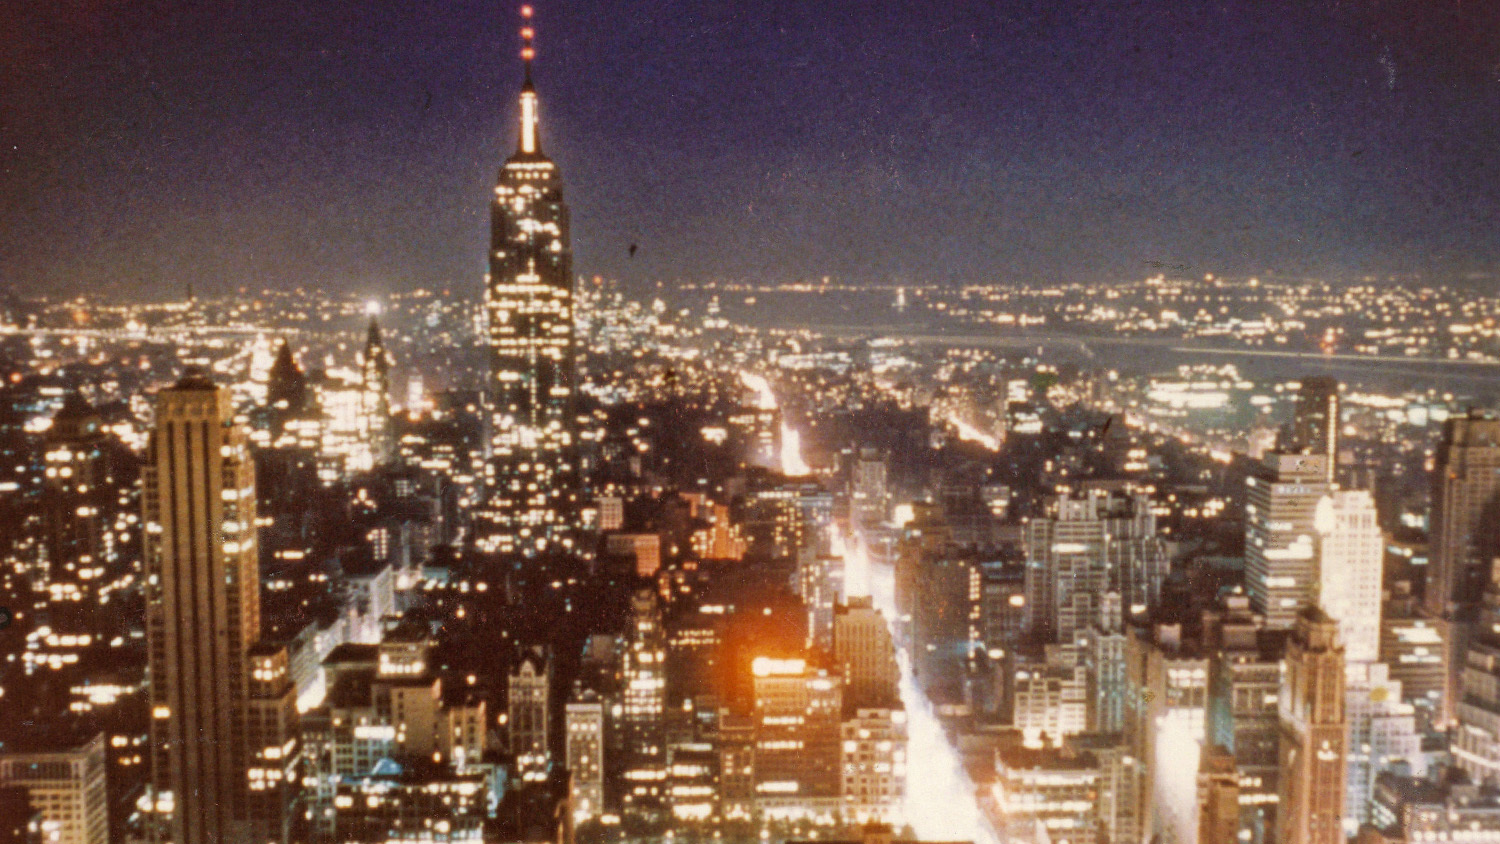 Empire State Building and Manhattan lights at night, 1952